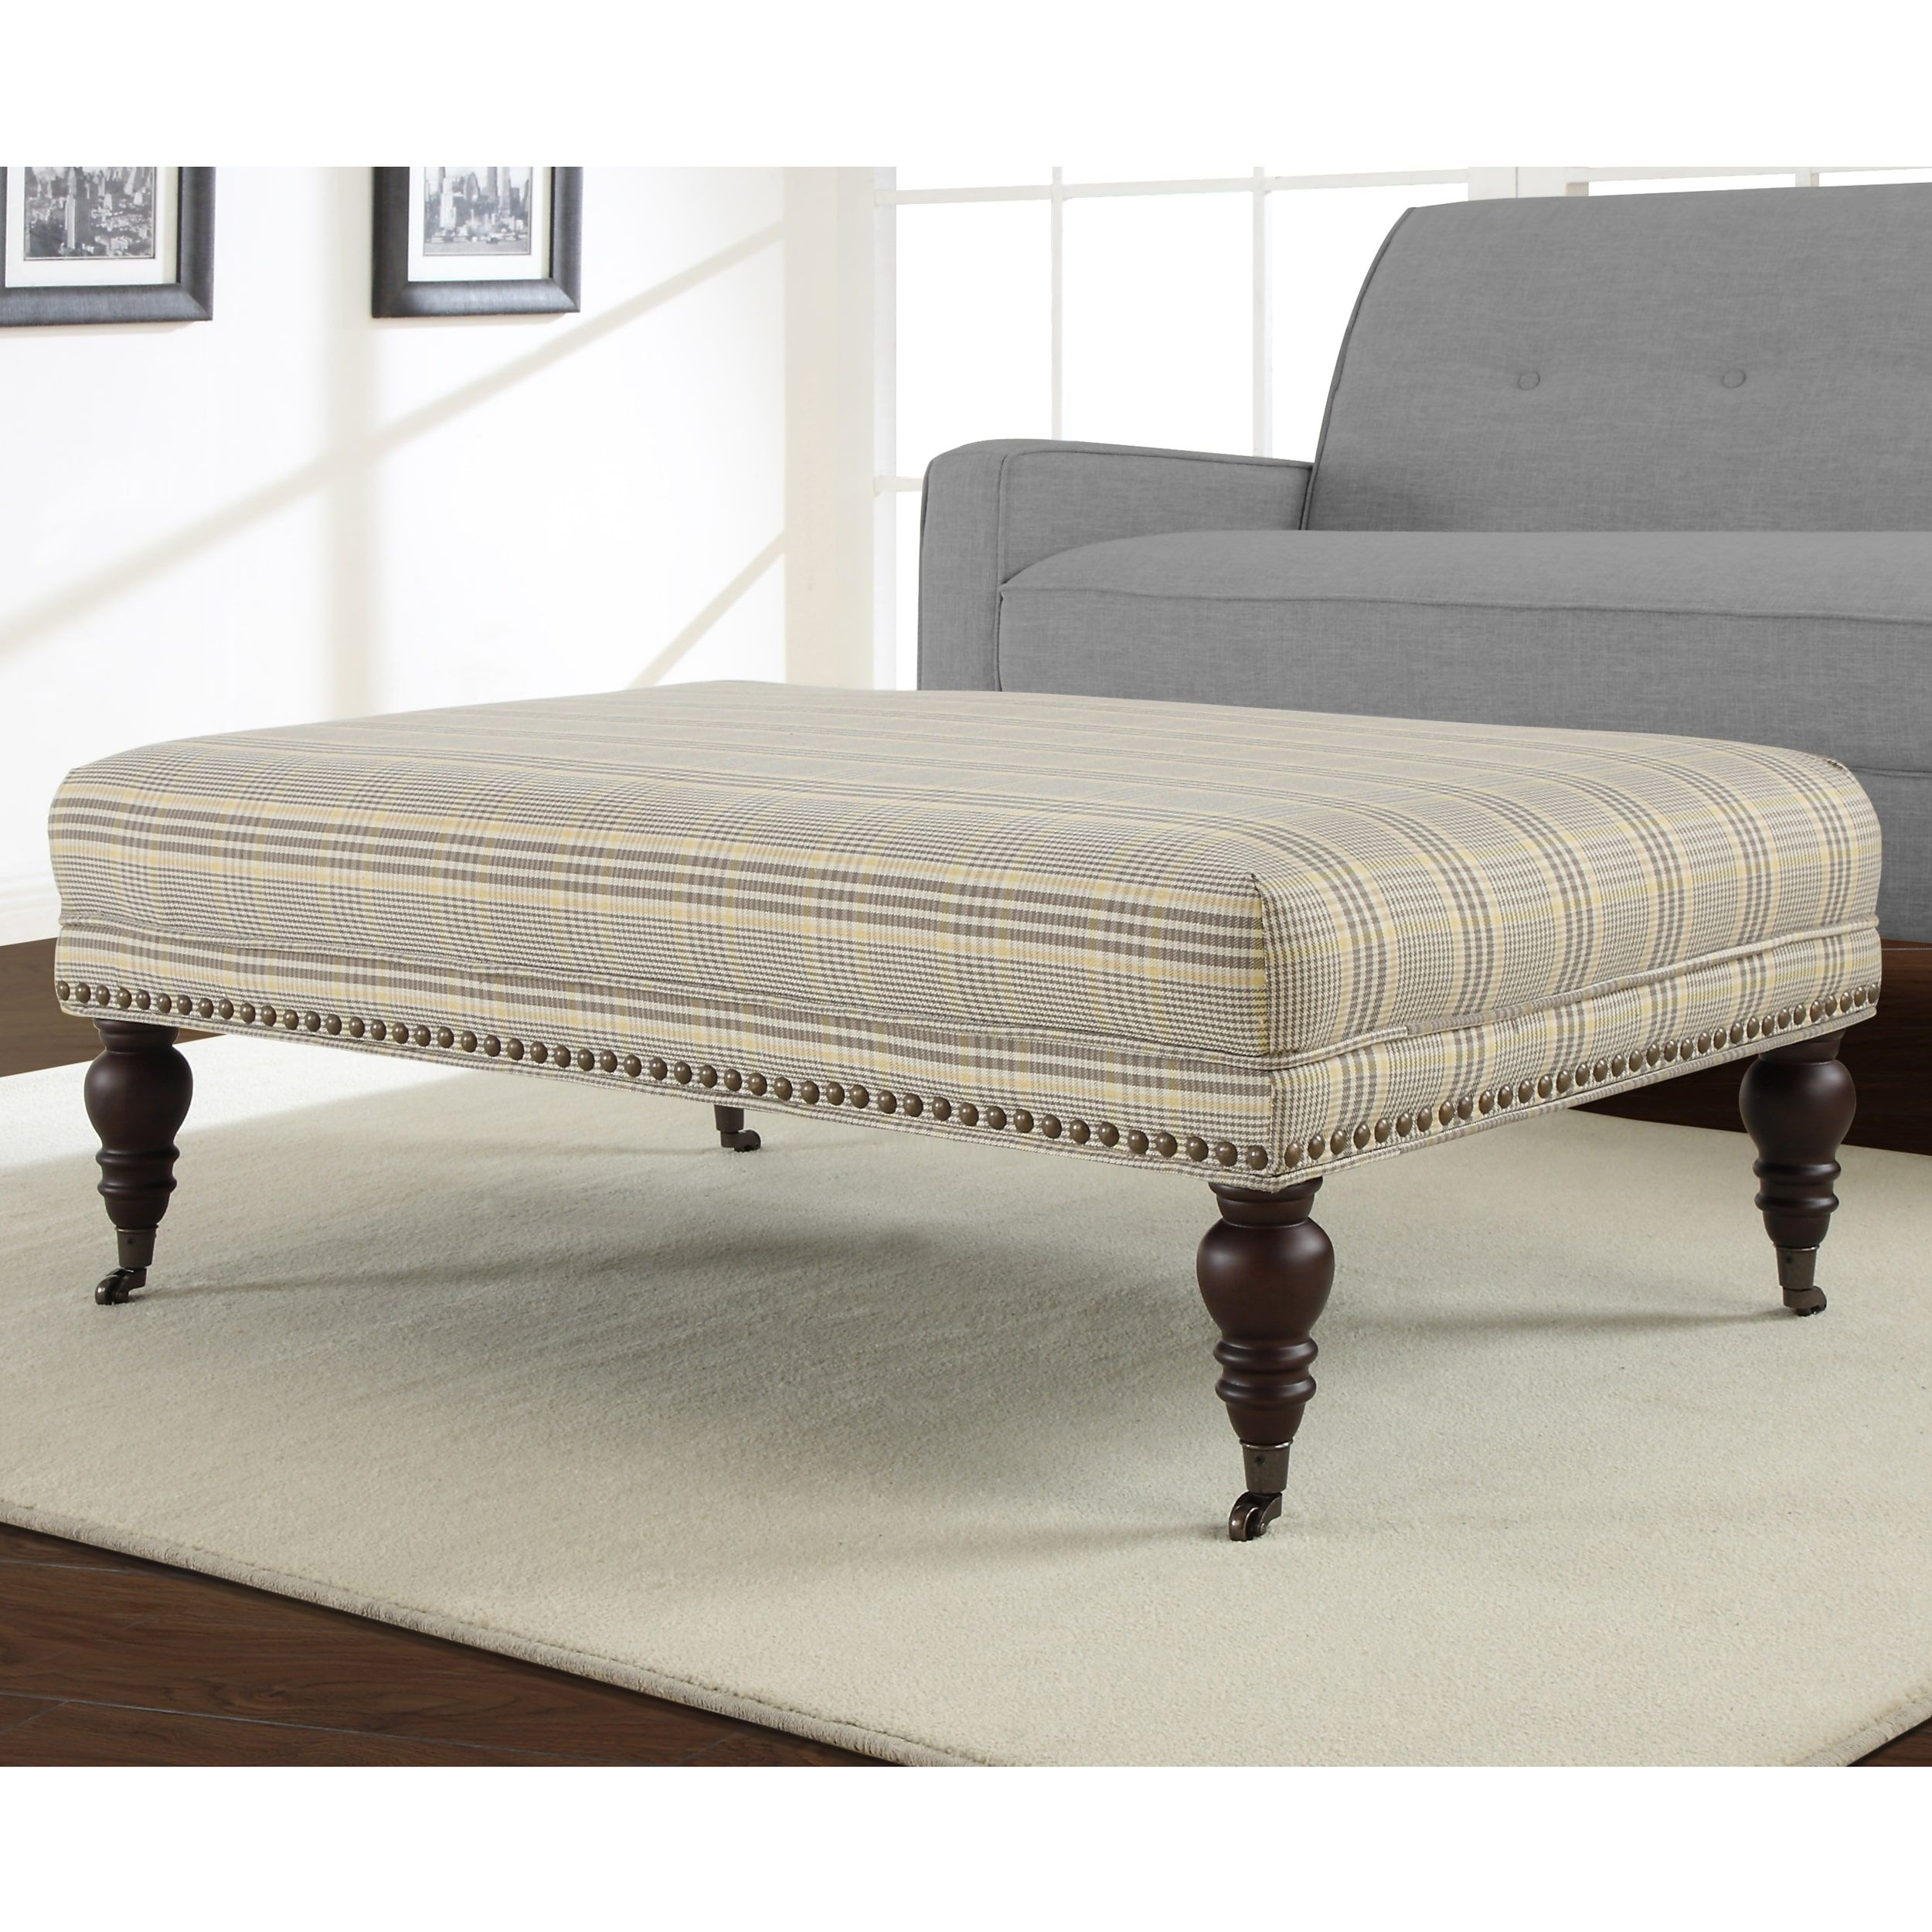 Flat Top Plaid Rectangular Ottoman | Overstock.com Shopping - The ...